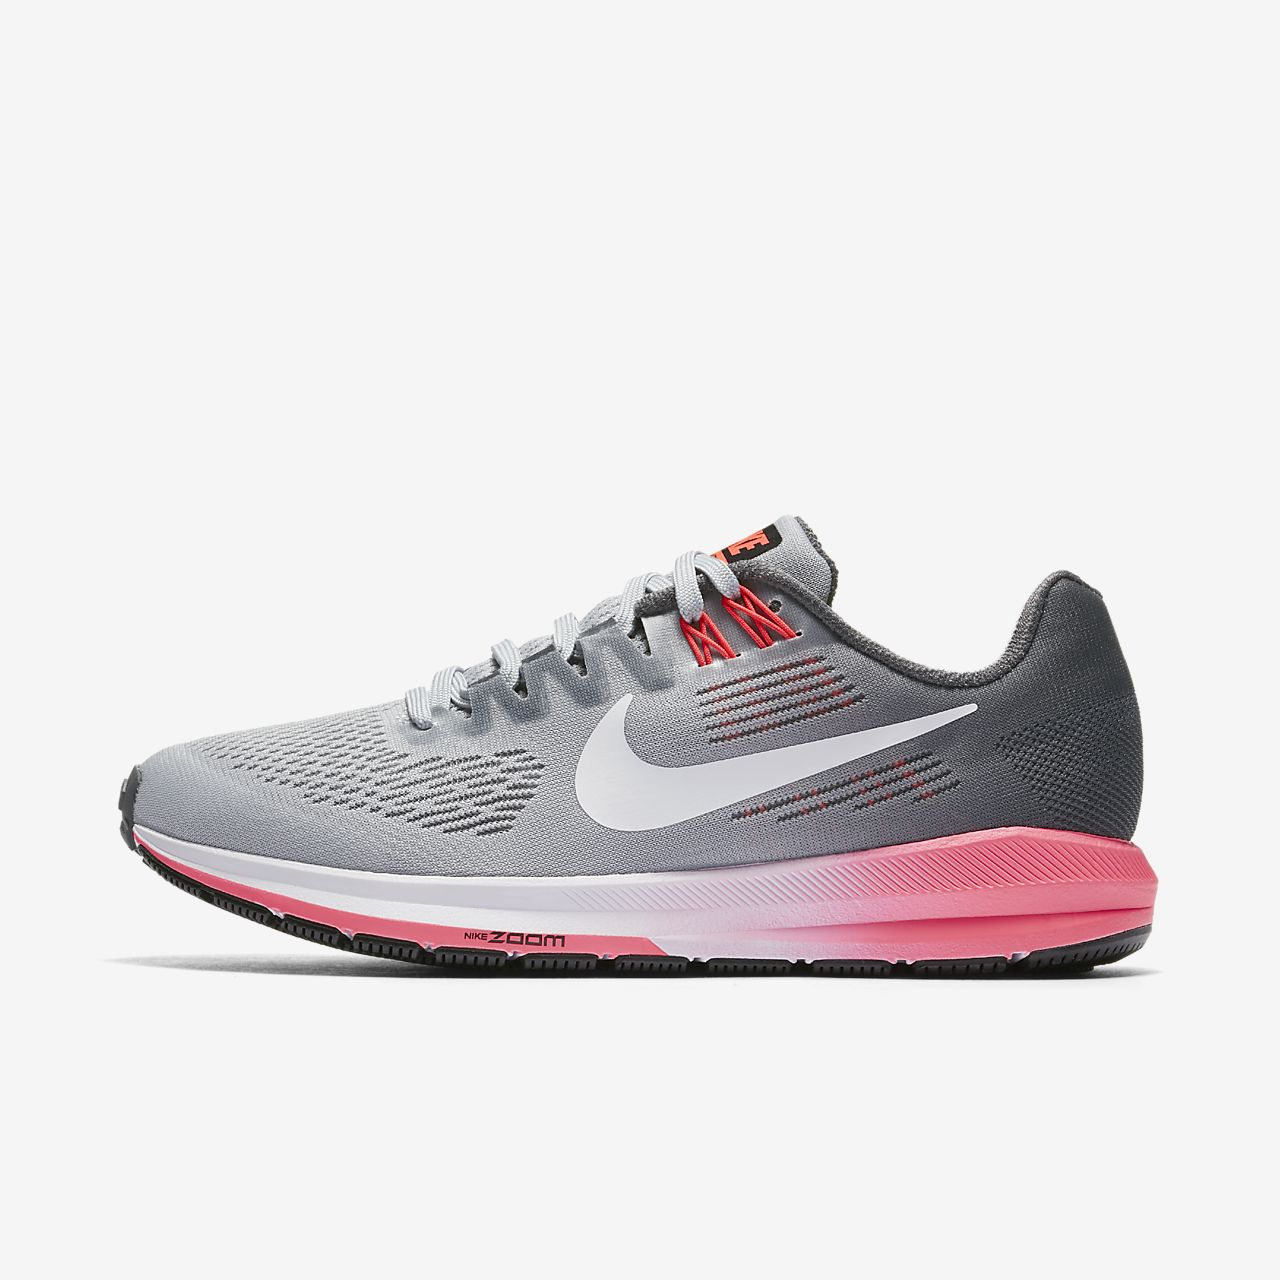 ... Nike Air Zoom Structure 21 Women's Running Shoe